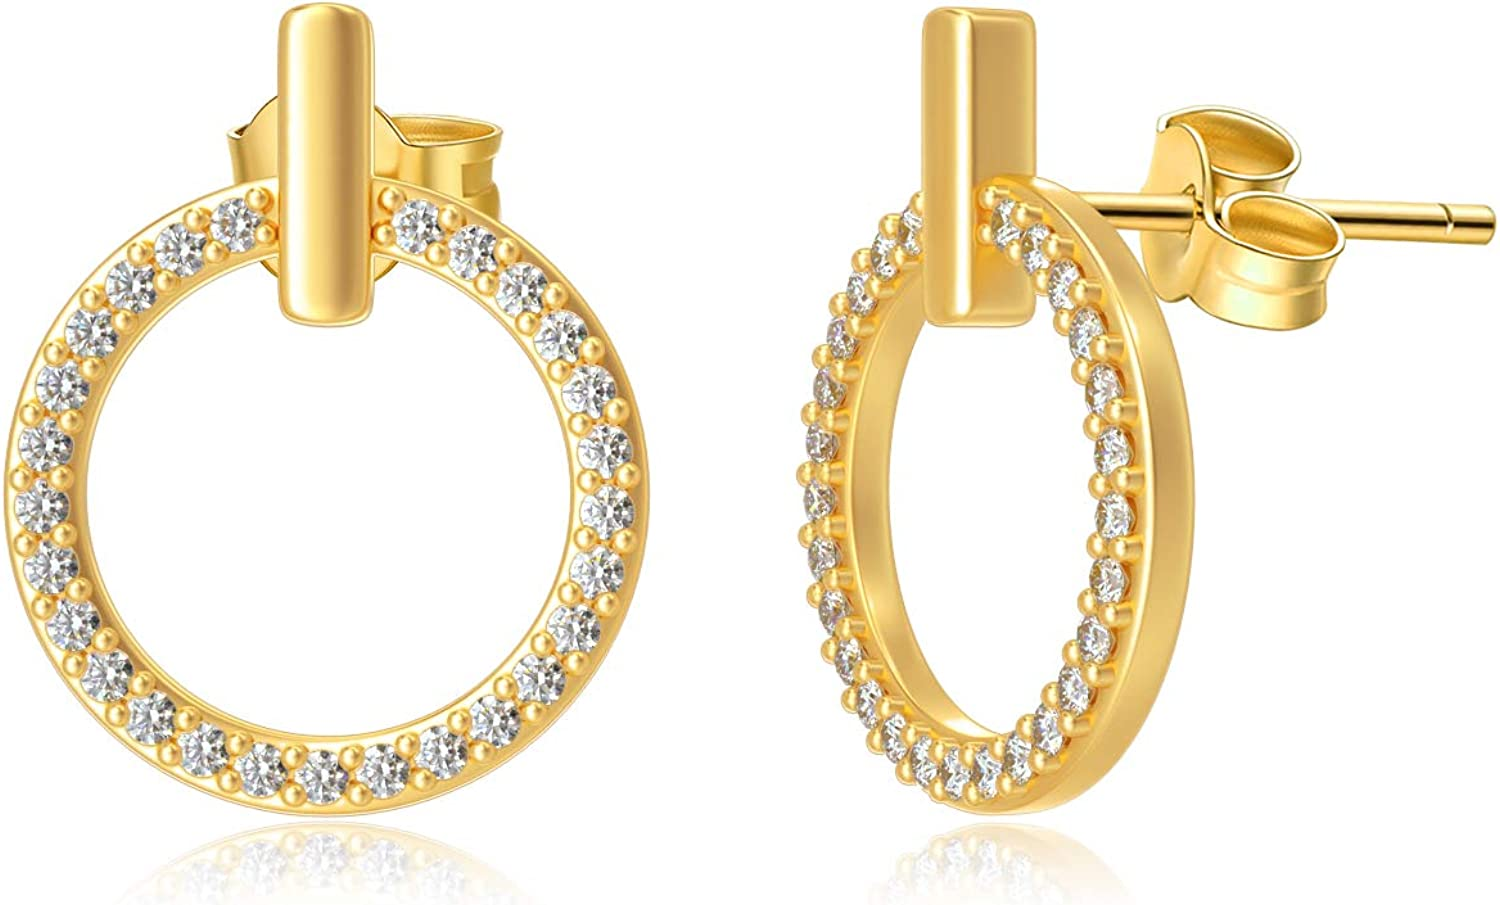 10k 14k Solid Gold Stud Earrings Very popular! Women Mo for Max 78% OFF